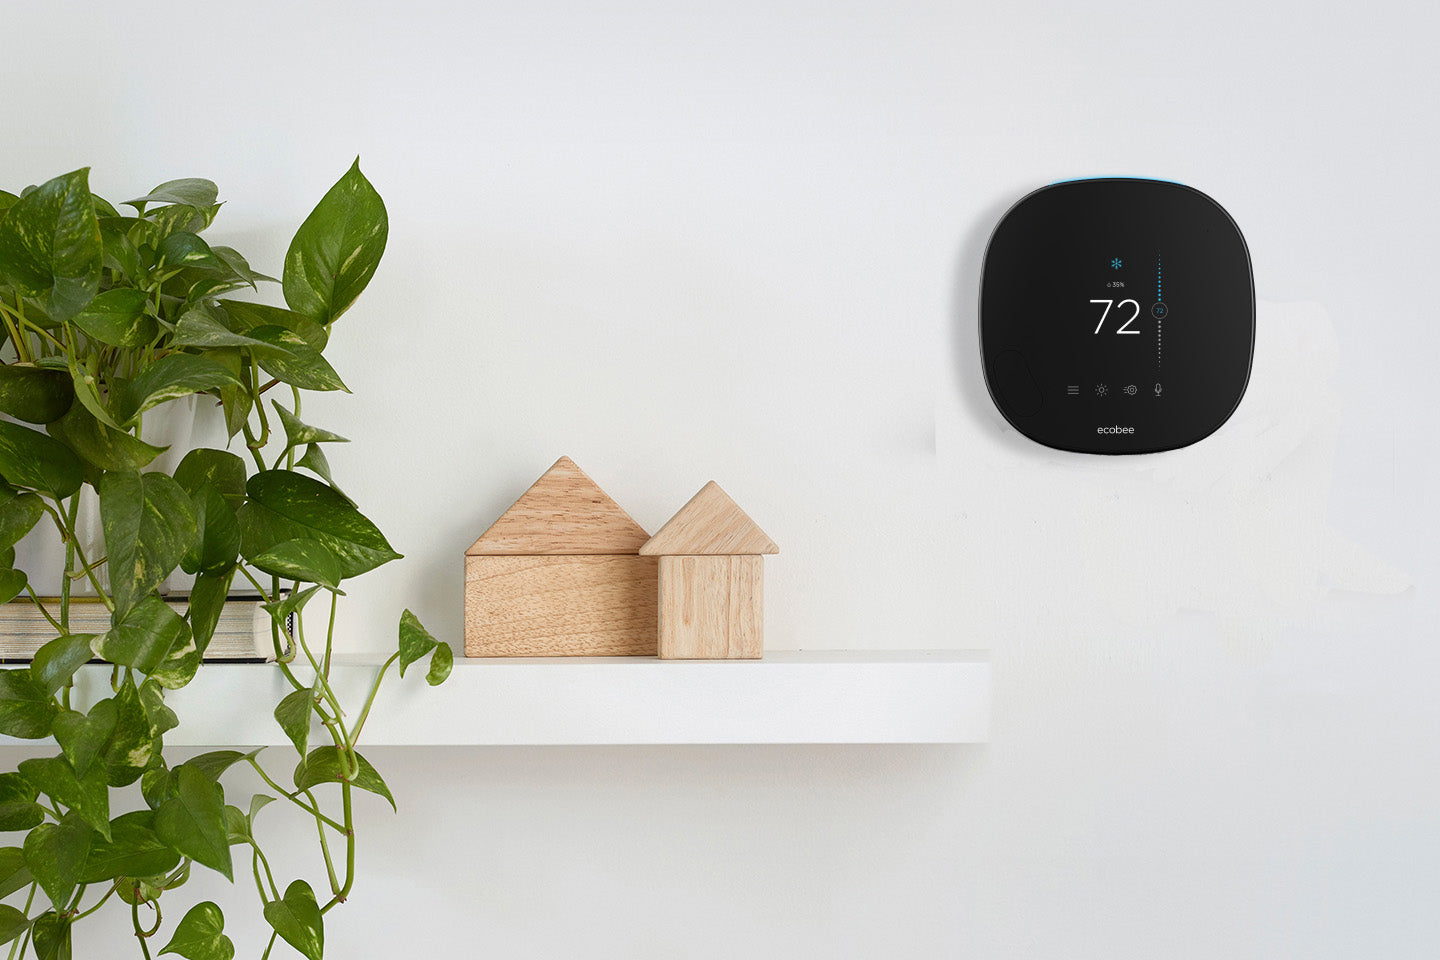 ecobee Advanced Smart Thermostat